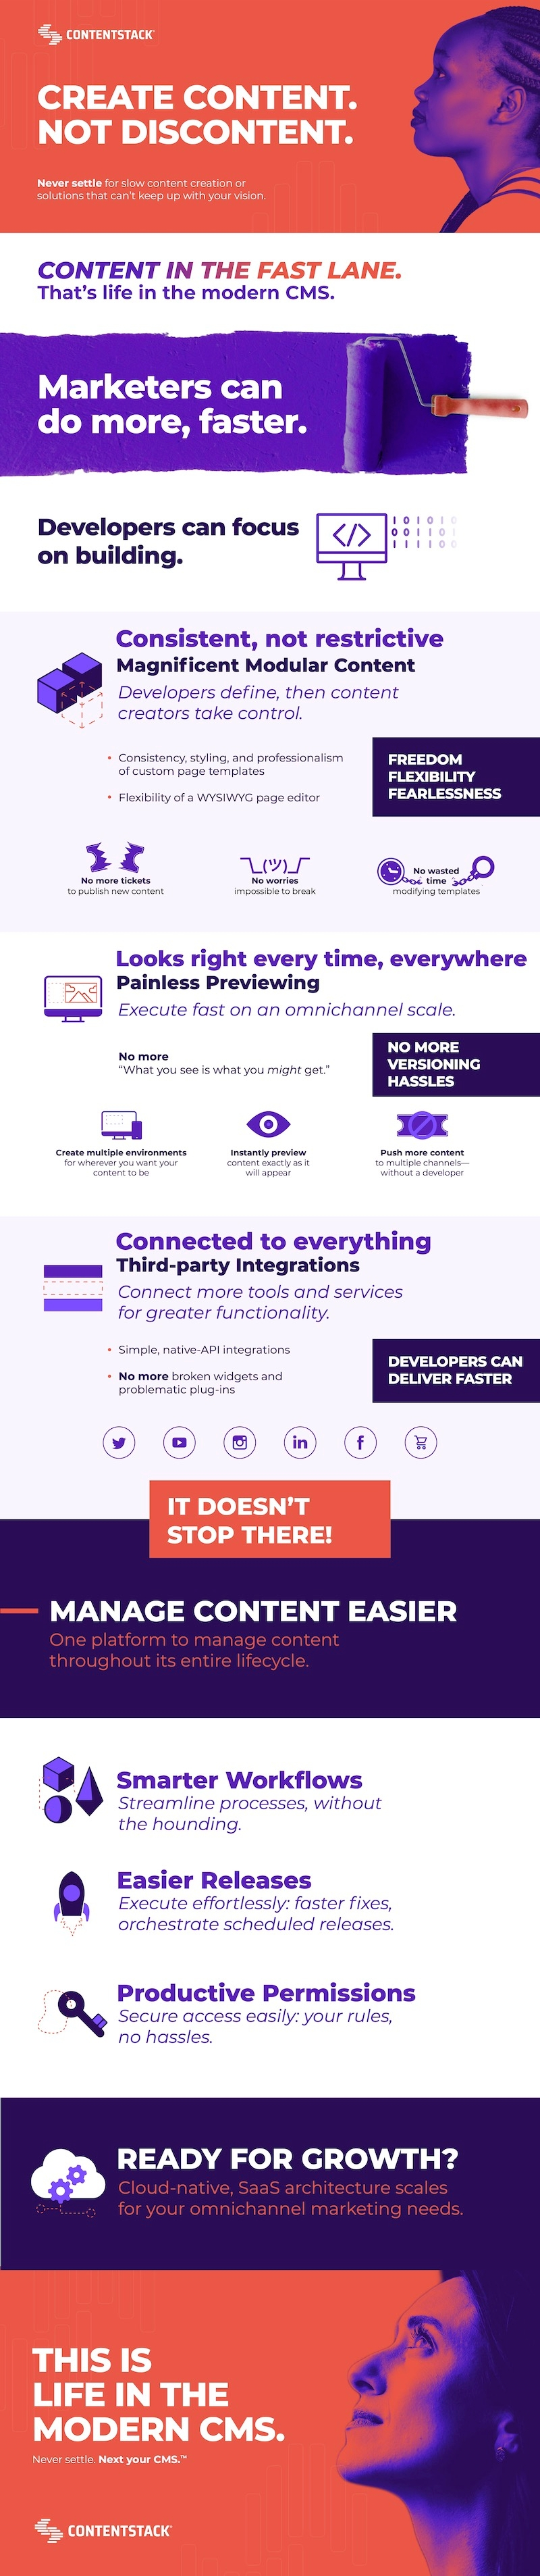 creating-content-faster-contentstack-infographic.jpg